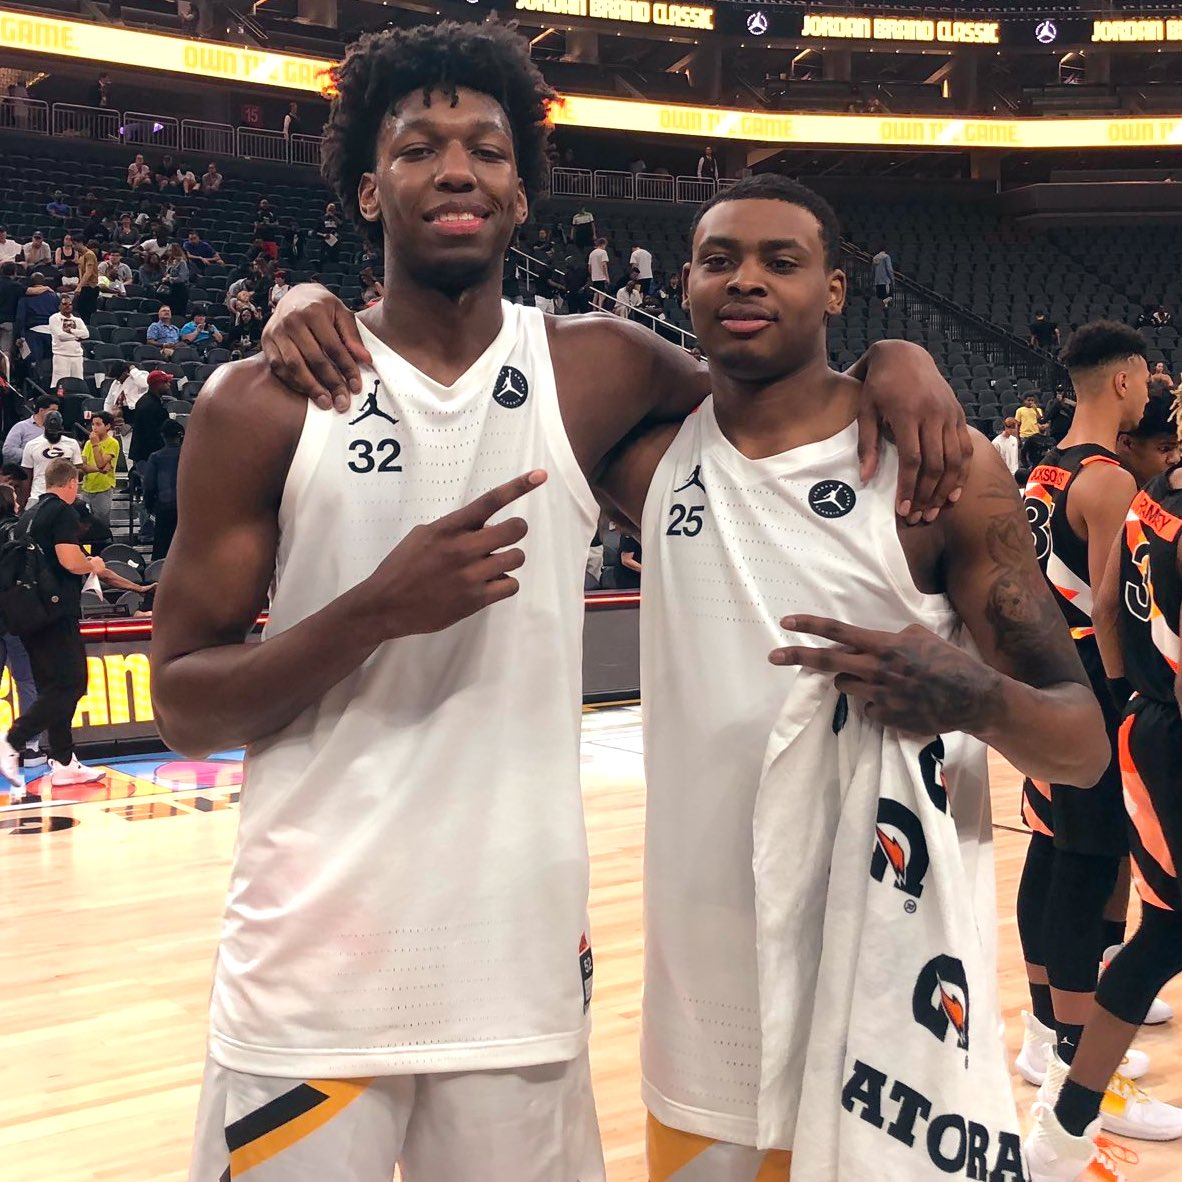 Memphis Tigers recruiting takes center stage at the Jordan Brand Classic.